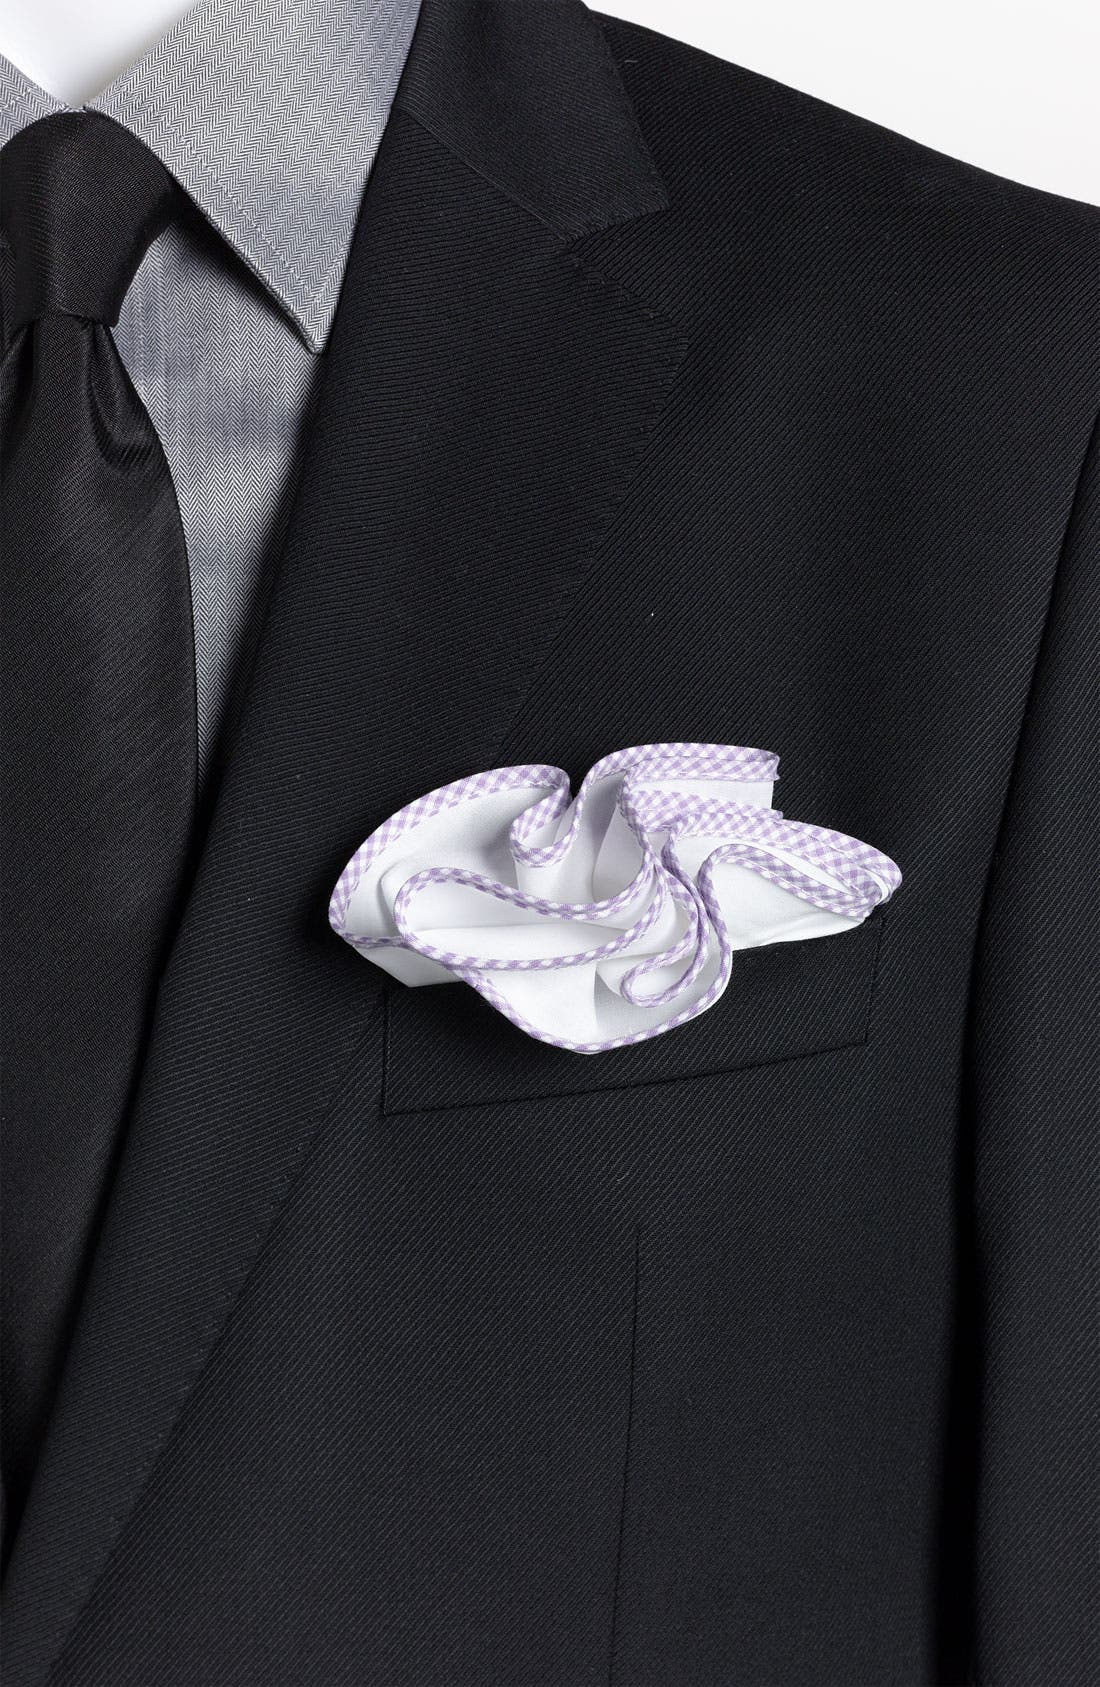 Alternate Image 3  - Edward Armah Circular Pocket Square